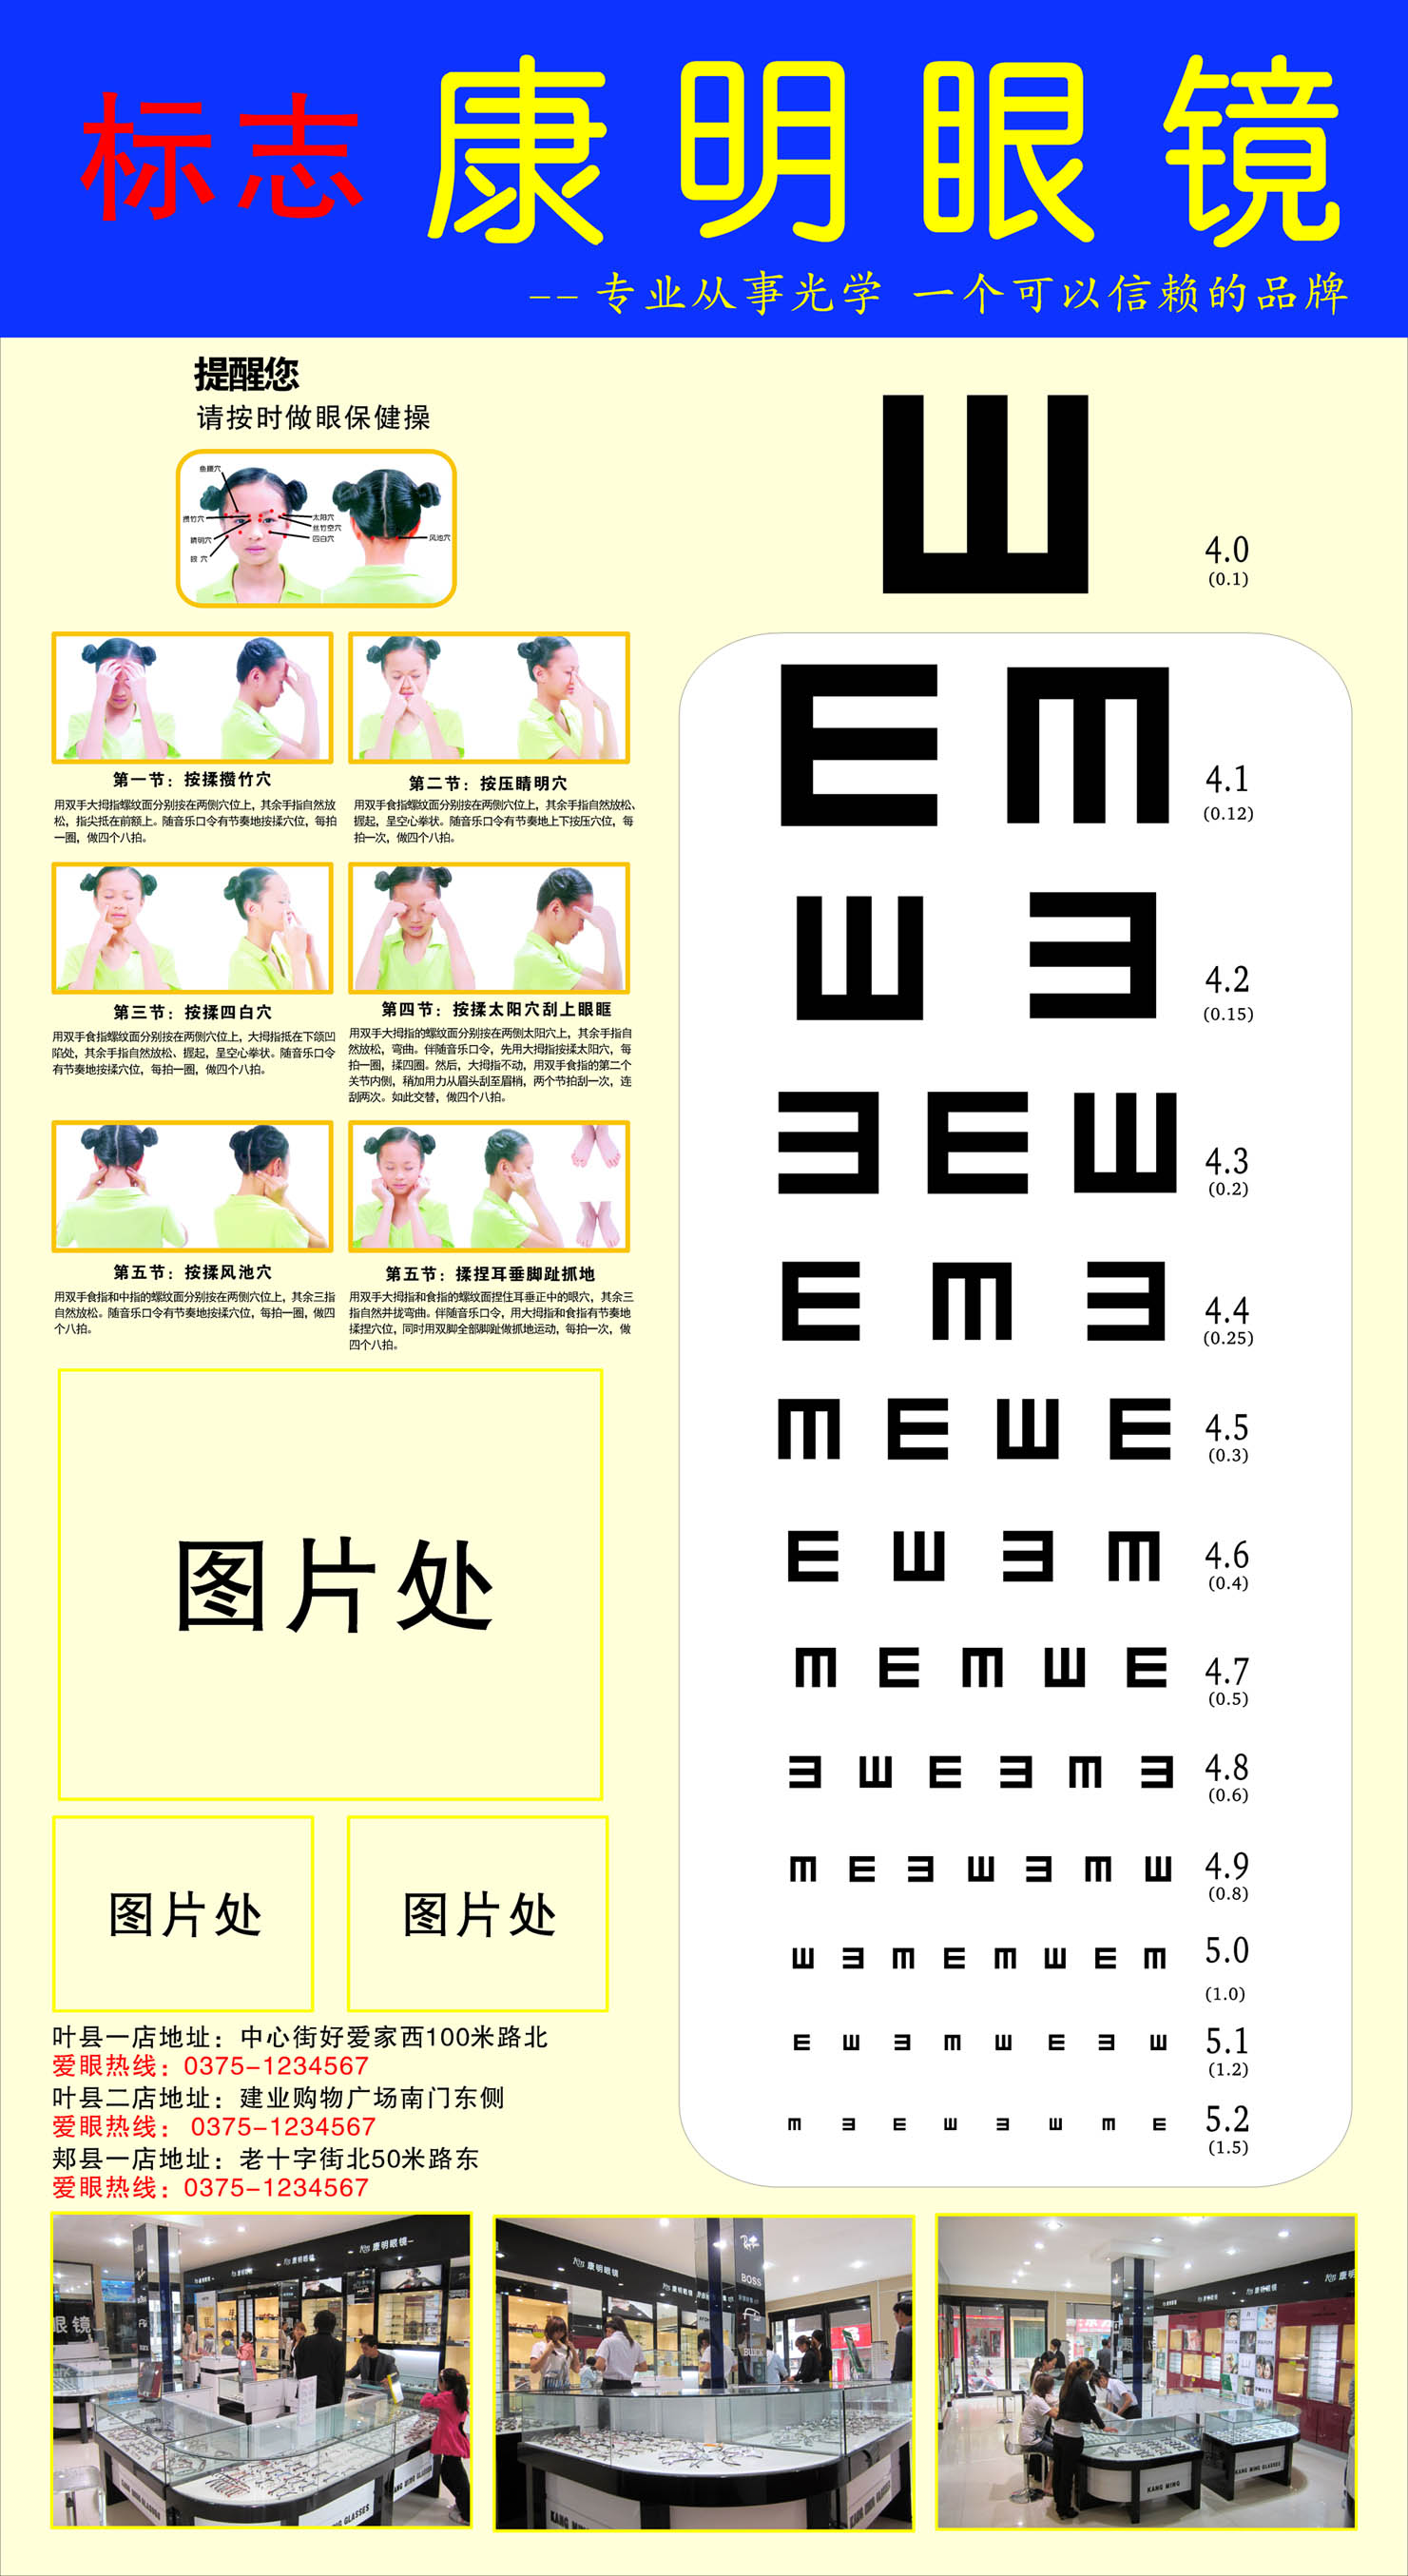 China lcd eye chart china lcd eye chart shopping guide at alibaba get quotations poster 581 posters material panels 684 glasses standard eye chart eye exercises nvjuhfo Images